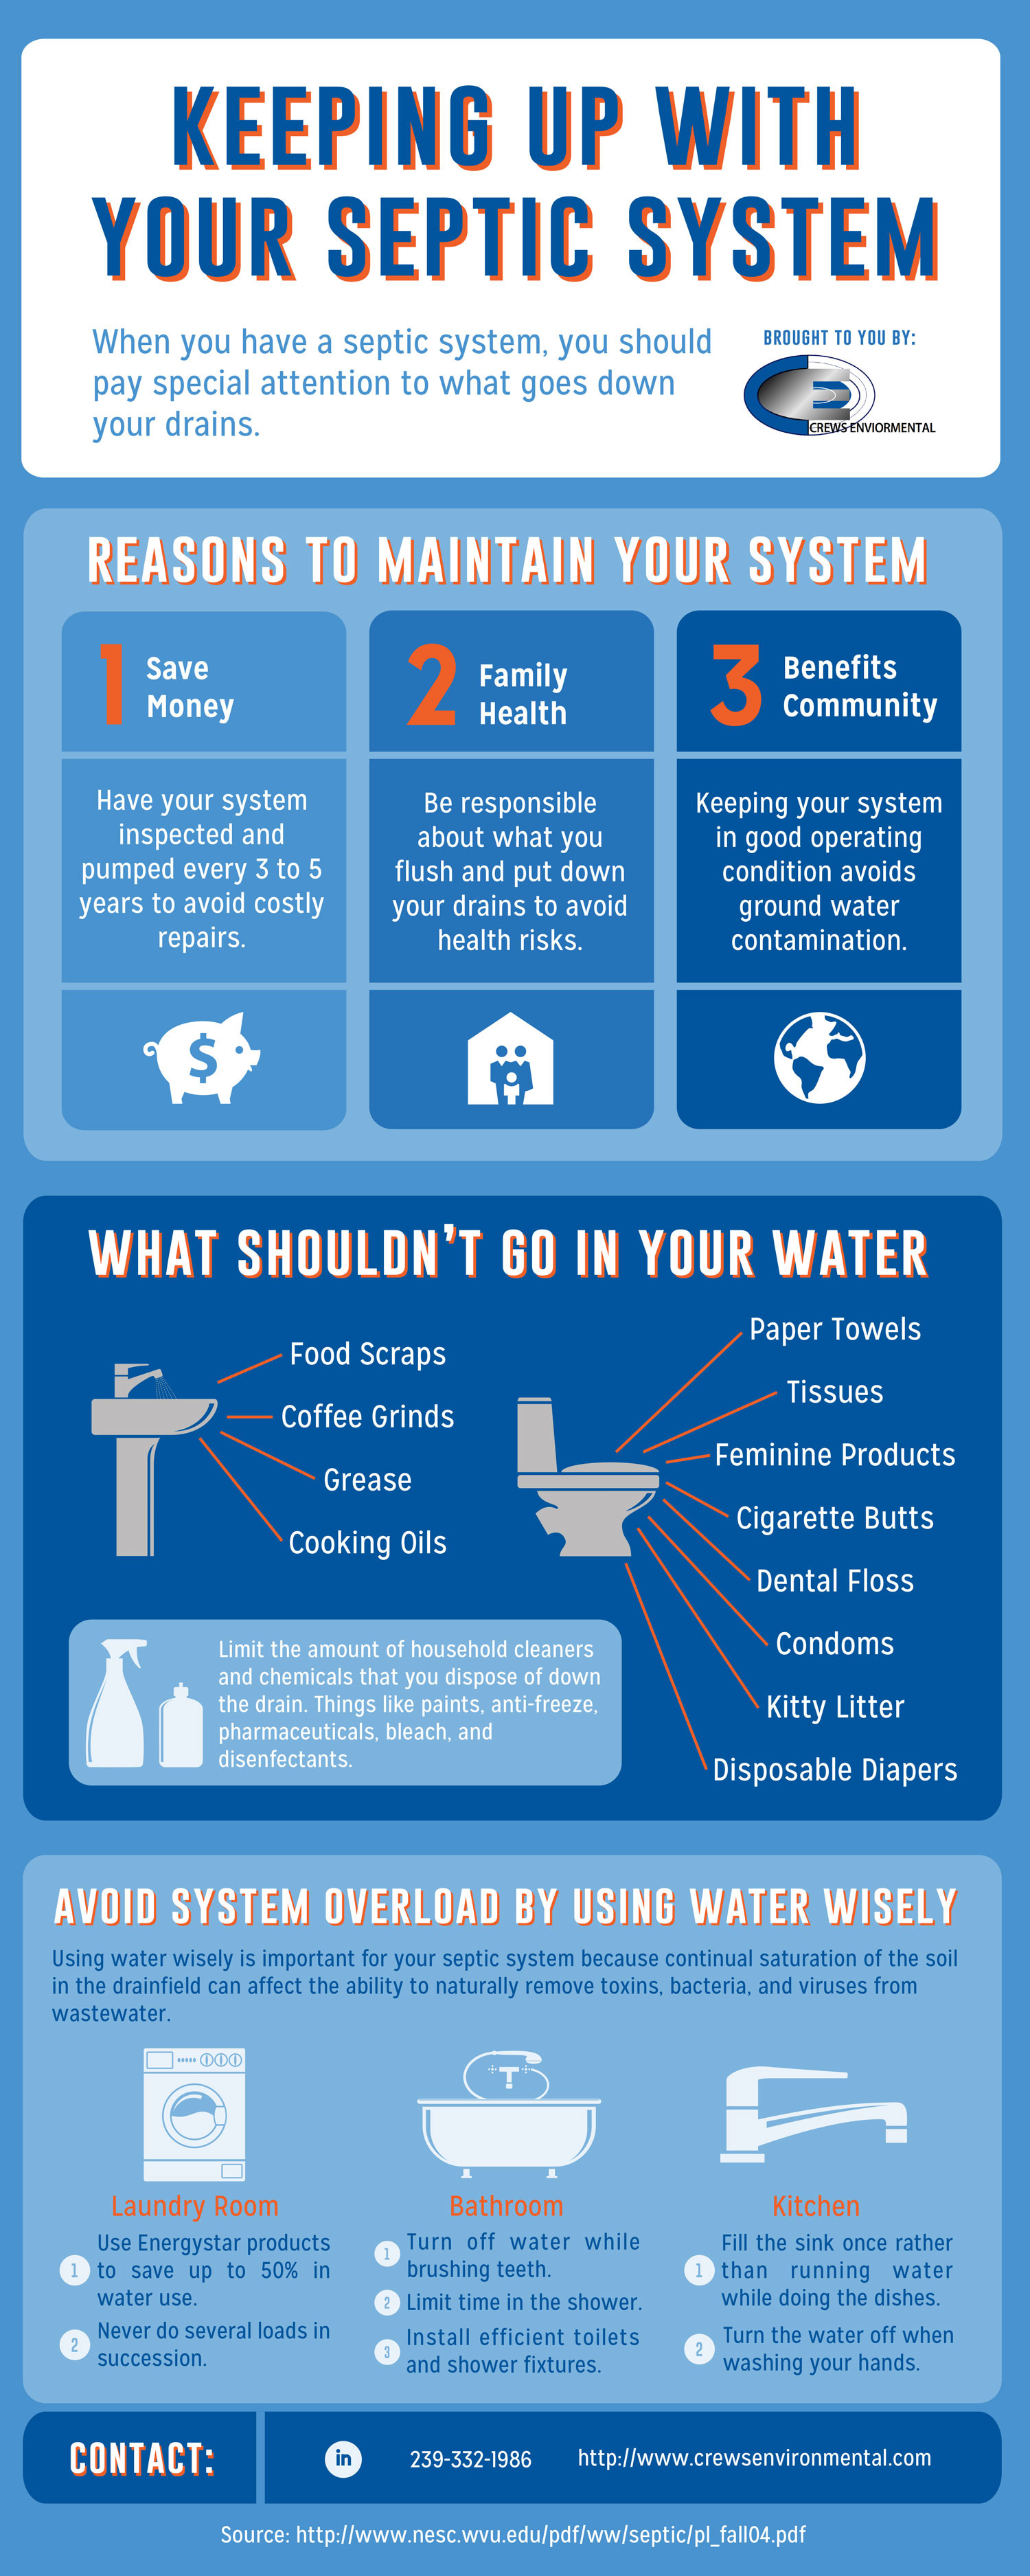 Keeping Up With Your Septic System Infographic